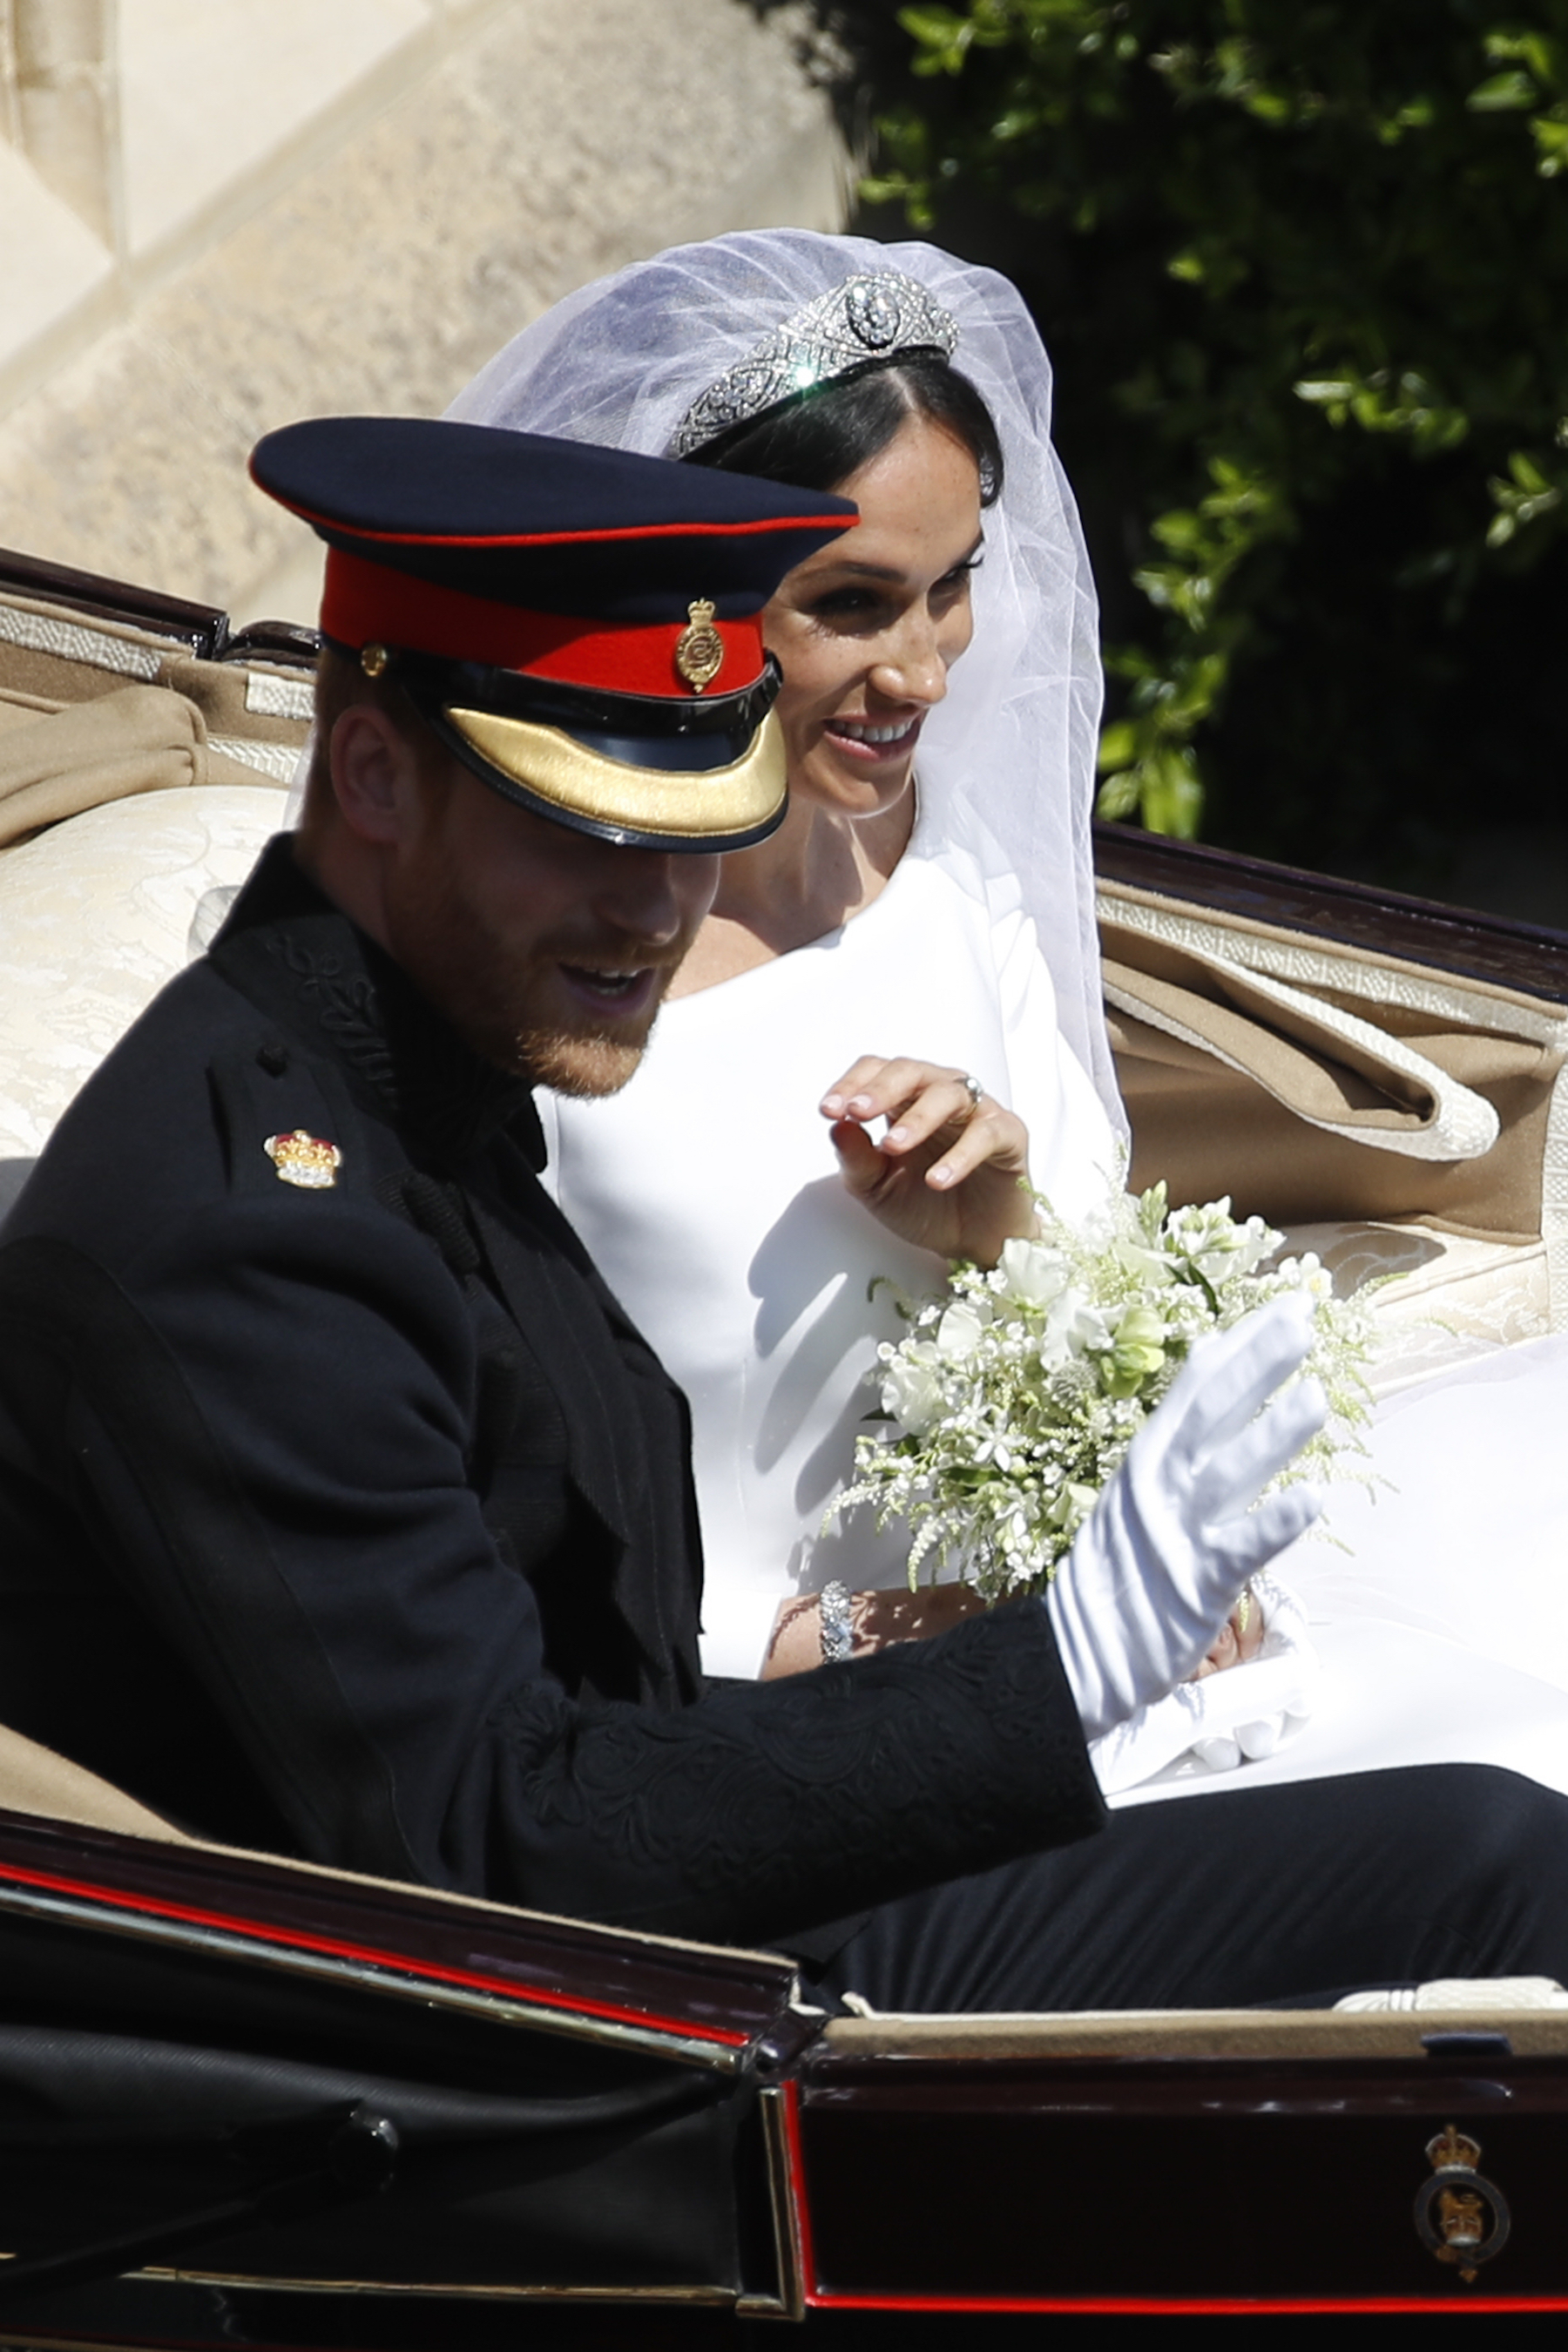 "<div class=""meta image-caption""><div class=""origin-logo origin-image ap""><span>AP</span></div><span class=""caption-text"">Britain's Prince Harry and Meghan Markle leave in a carriage after their wedding ceremony at St. George's Chapel in Windsor Castle in Windsor. (Odd Andersen/pool photo via AP)</span></div>"